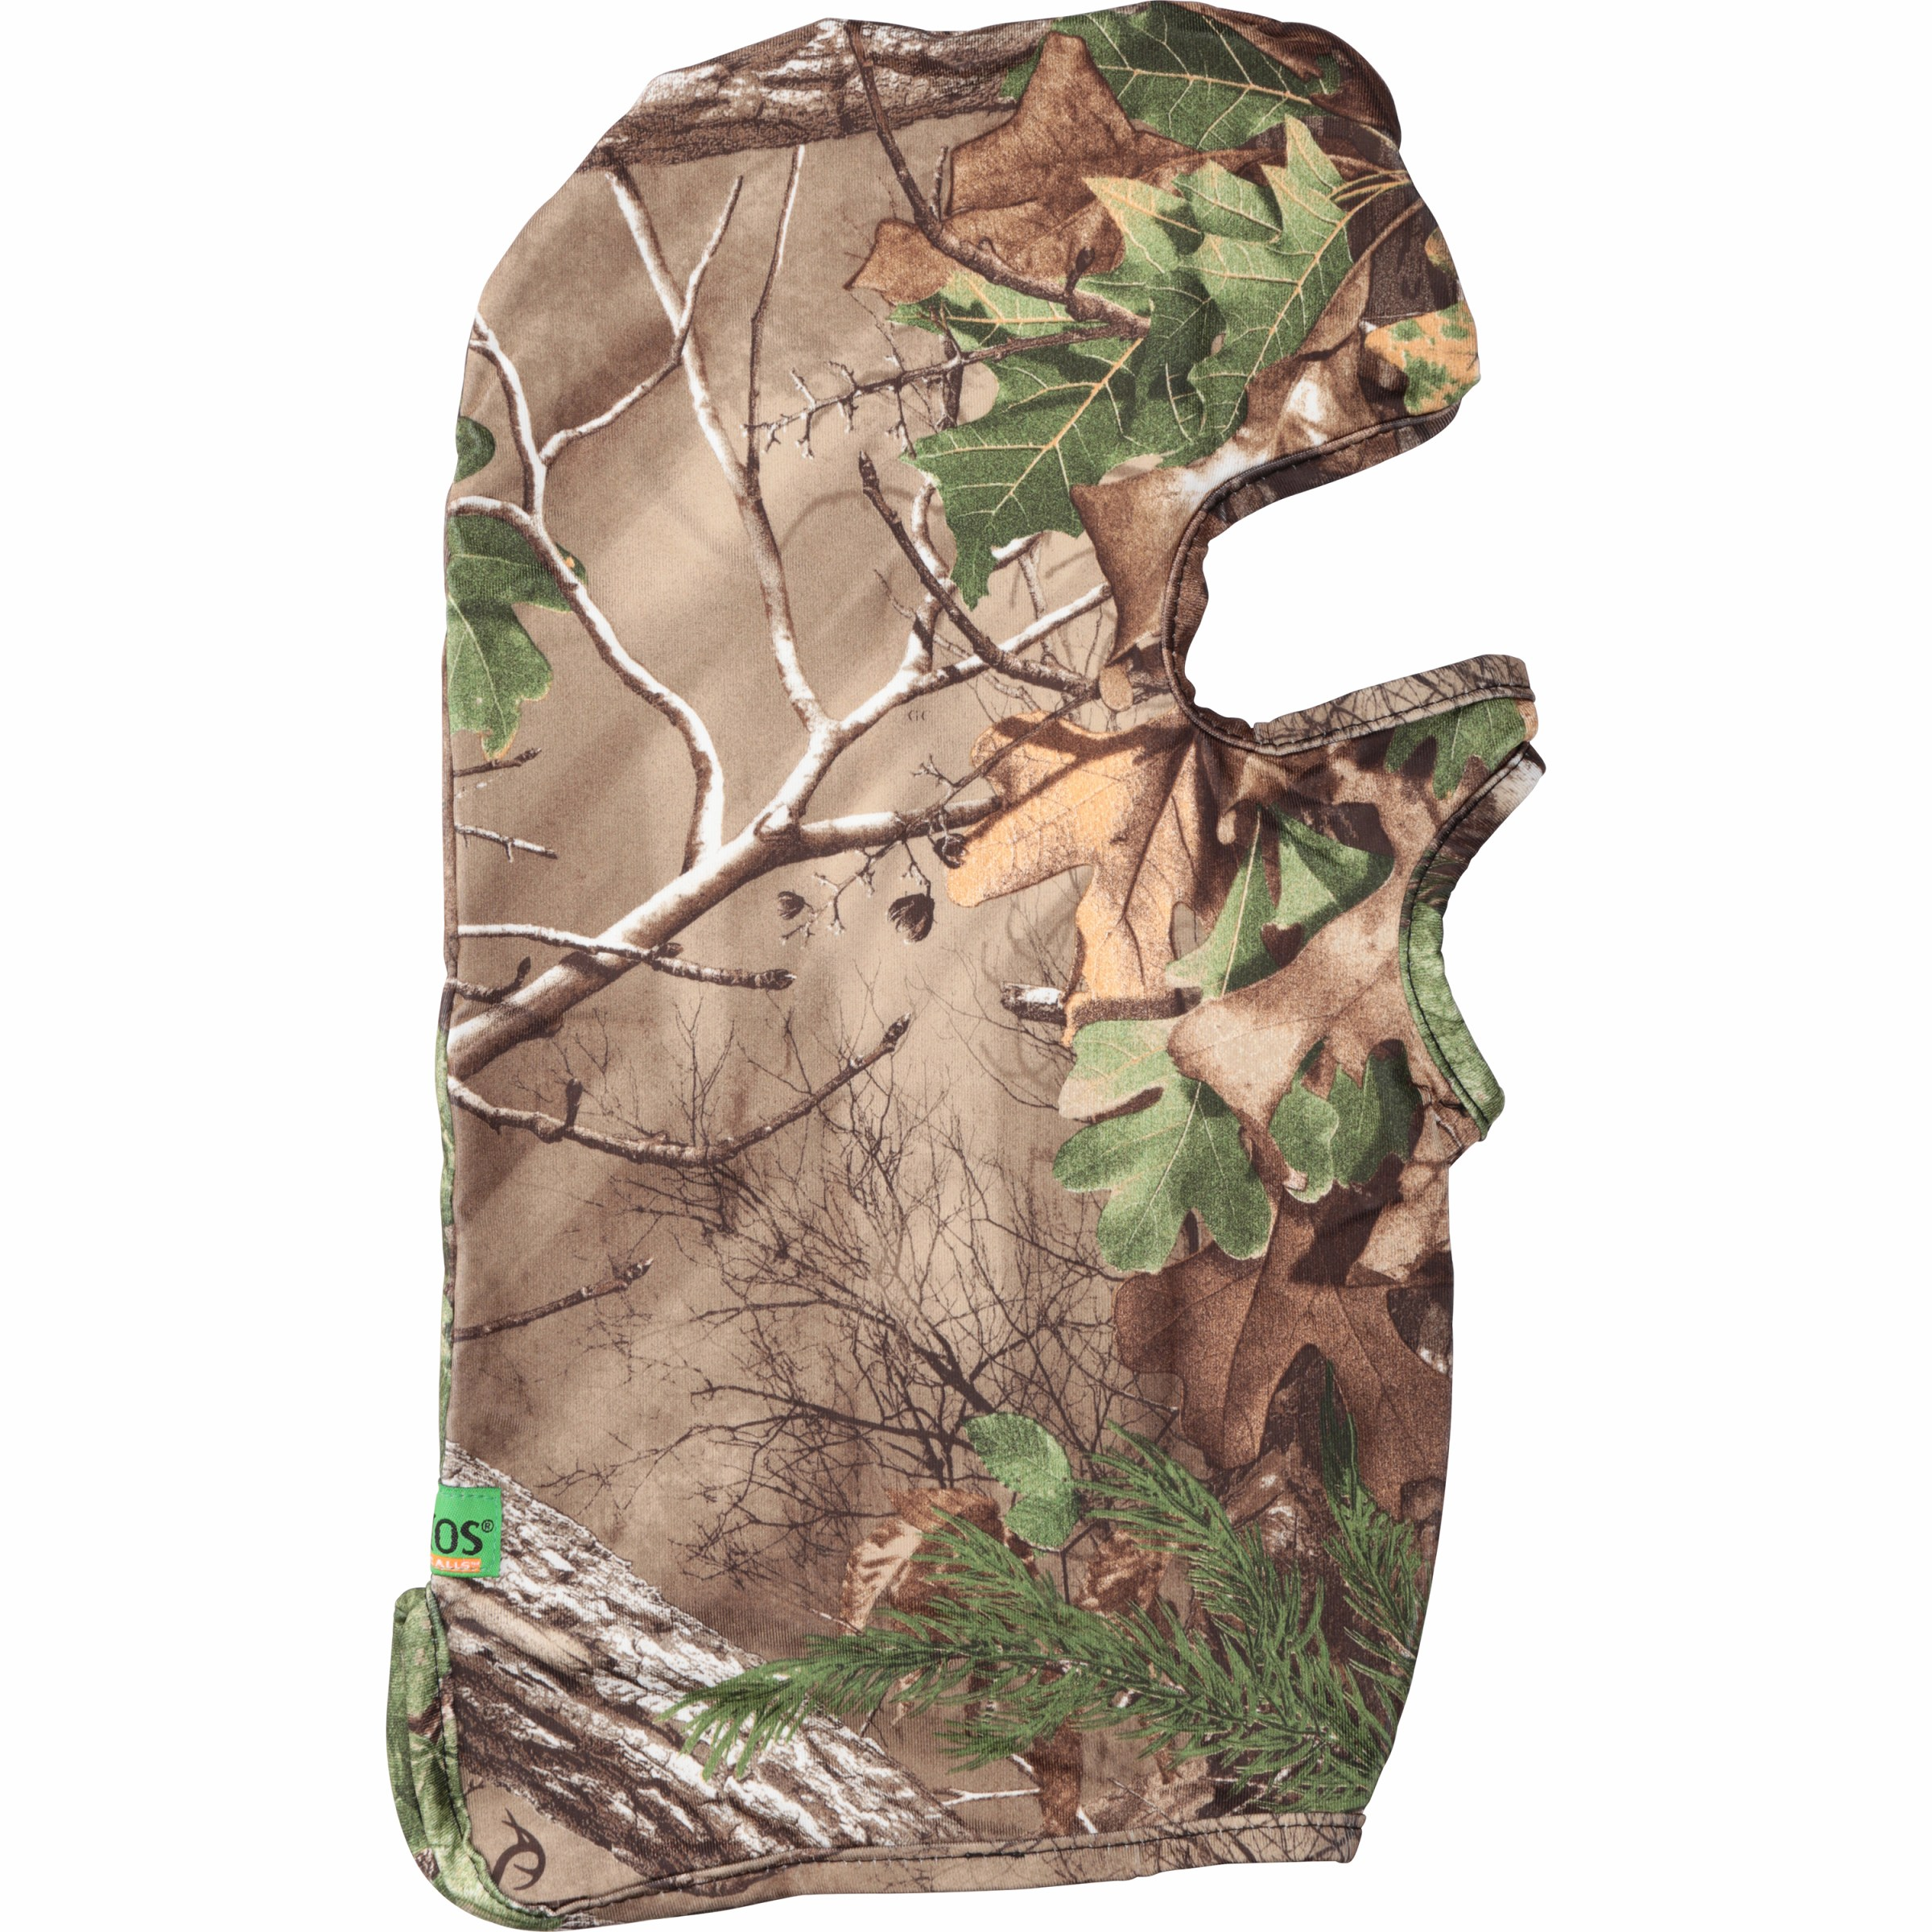 Primos Hunting apg High Definition Stretch-Fit Full Mask by Primos Hunting